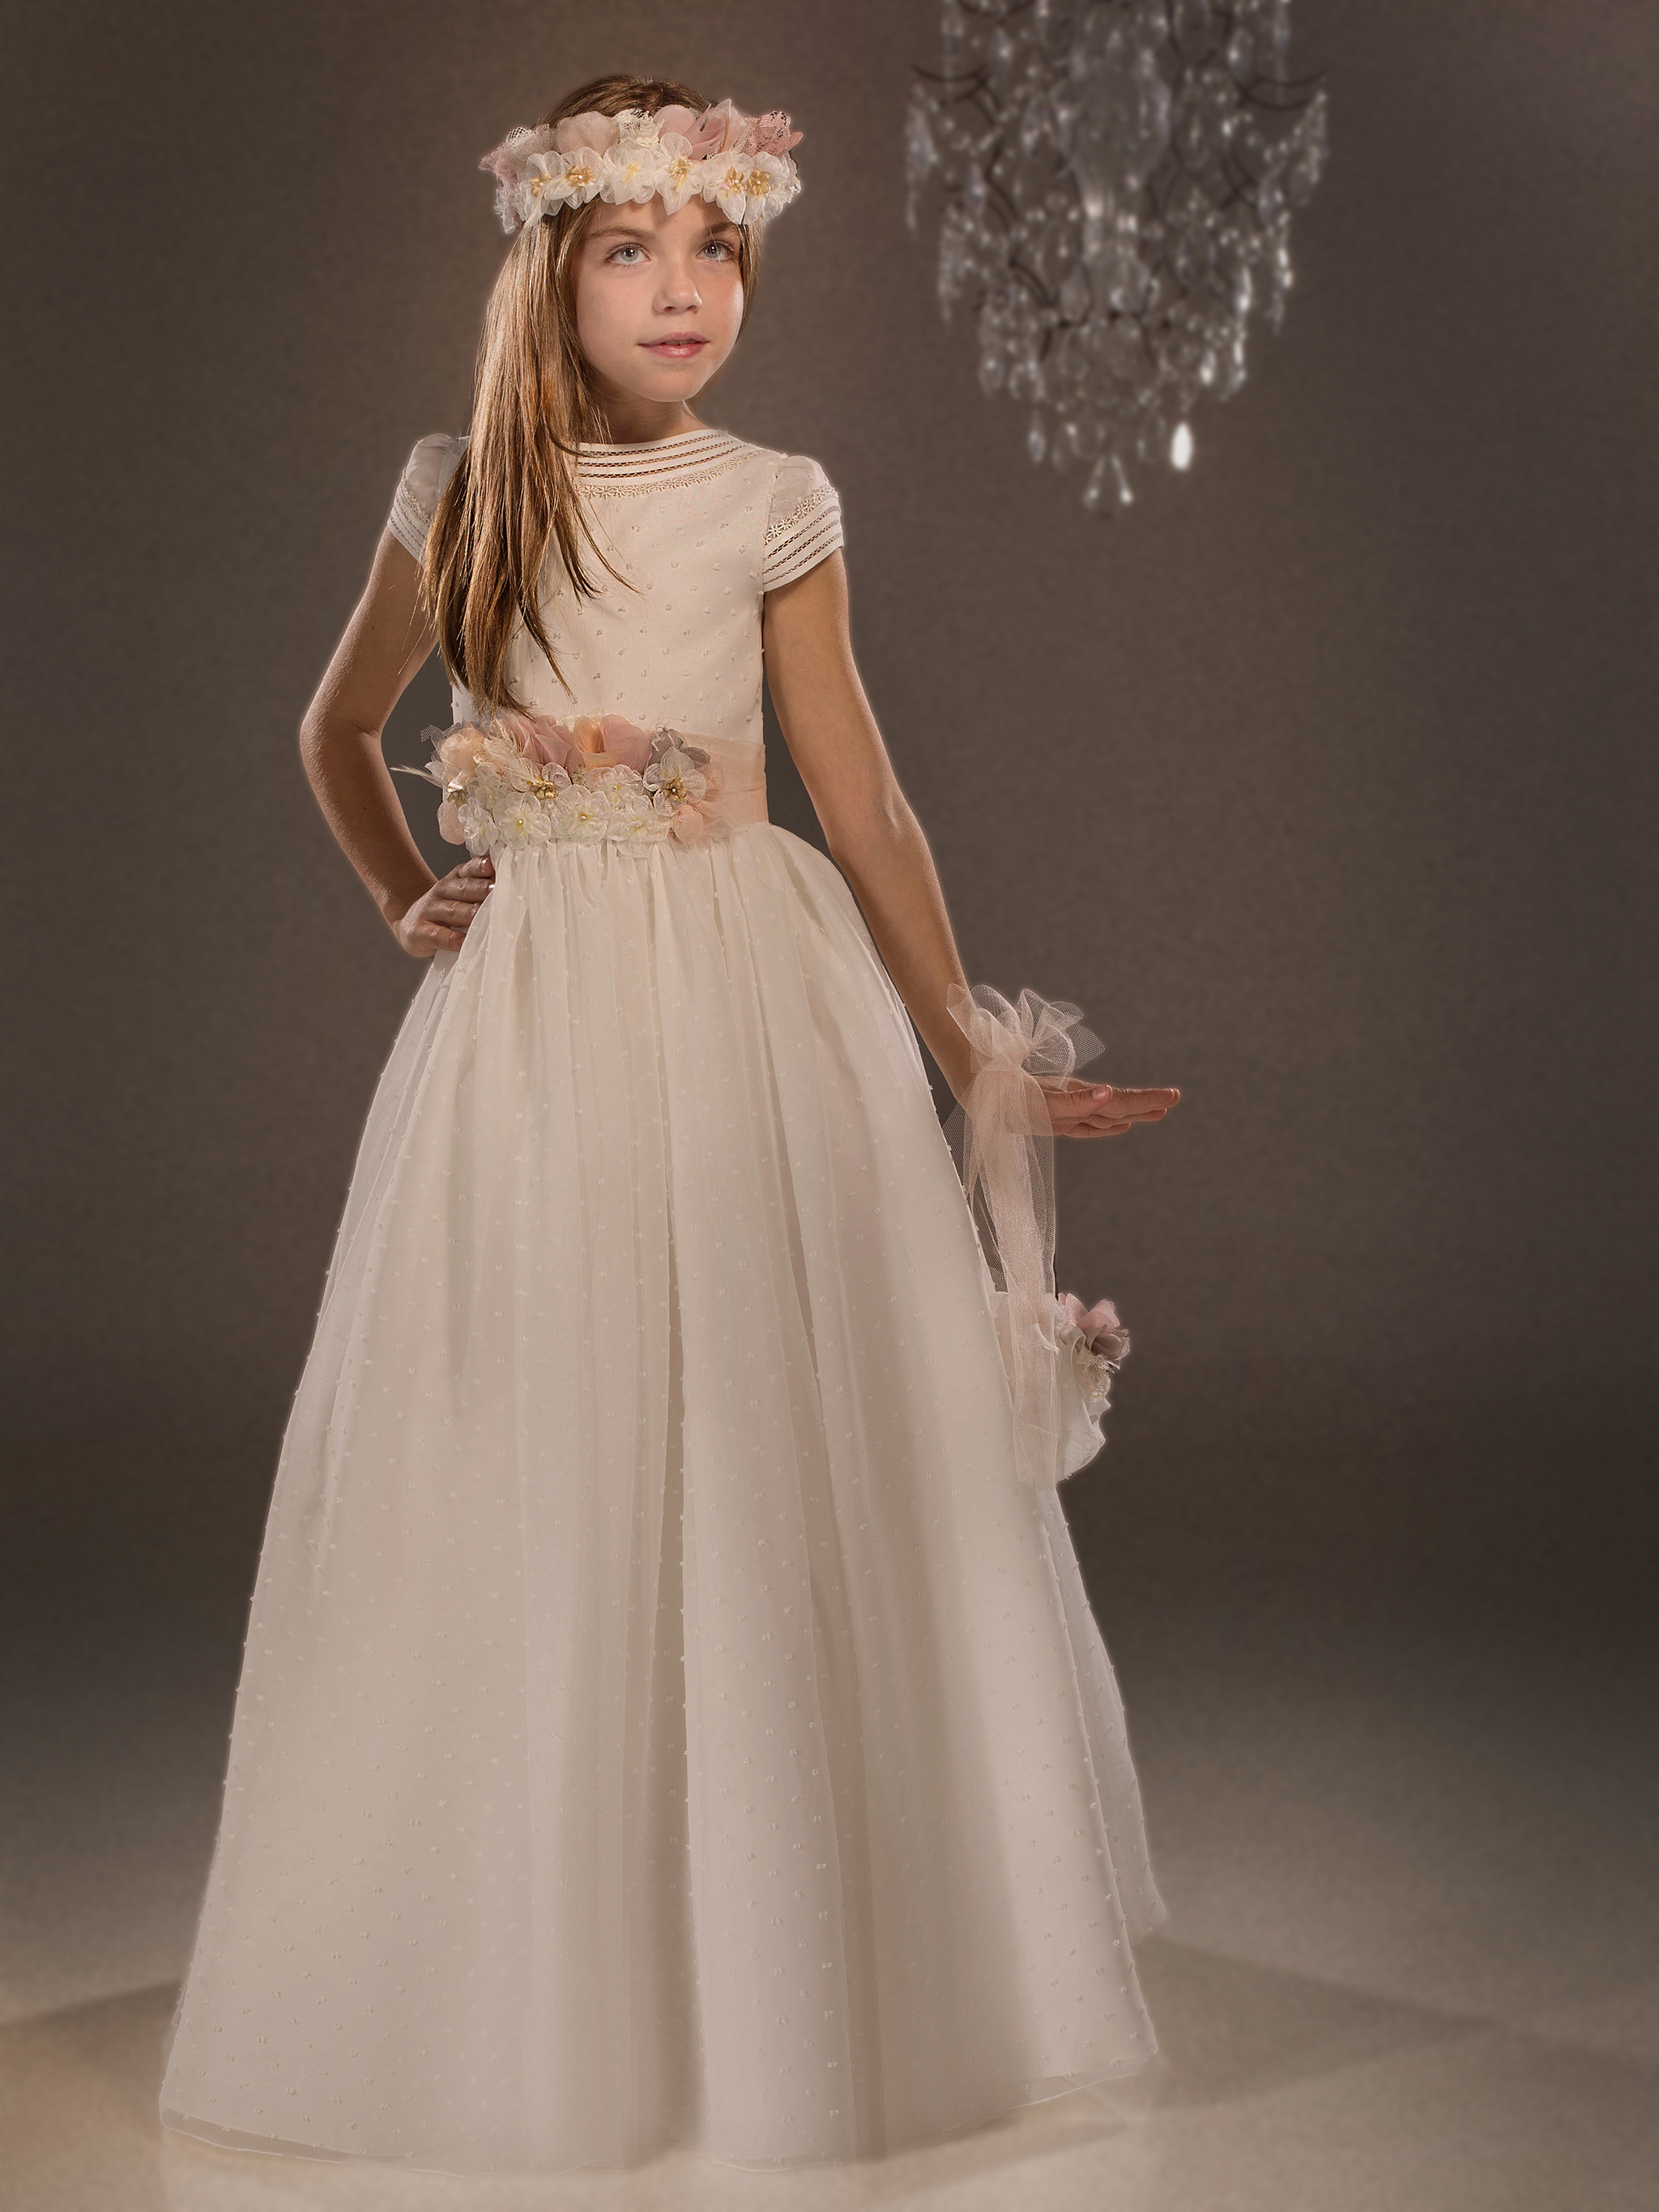 Exclusive European Communion Dresses